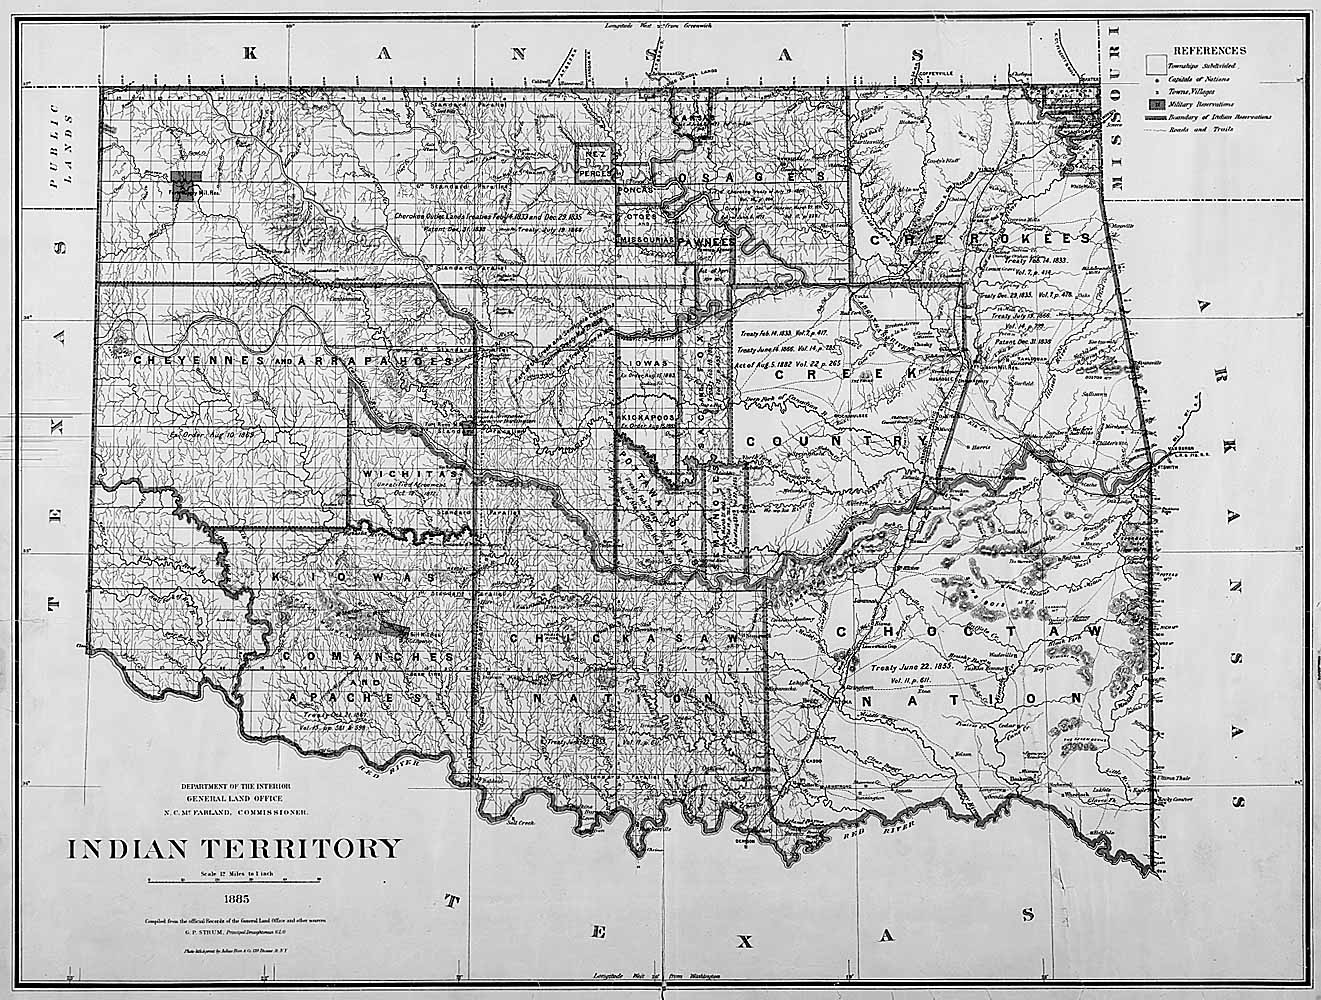 Map Of Indian Territory Oklahoma 1885